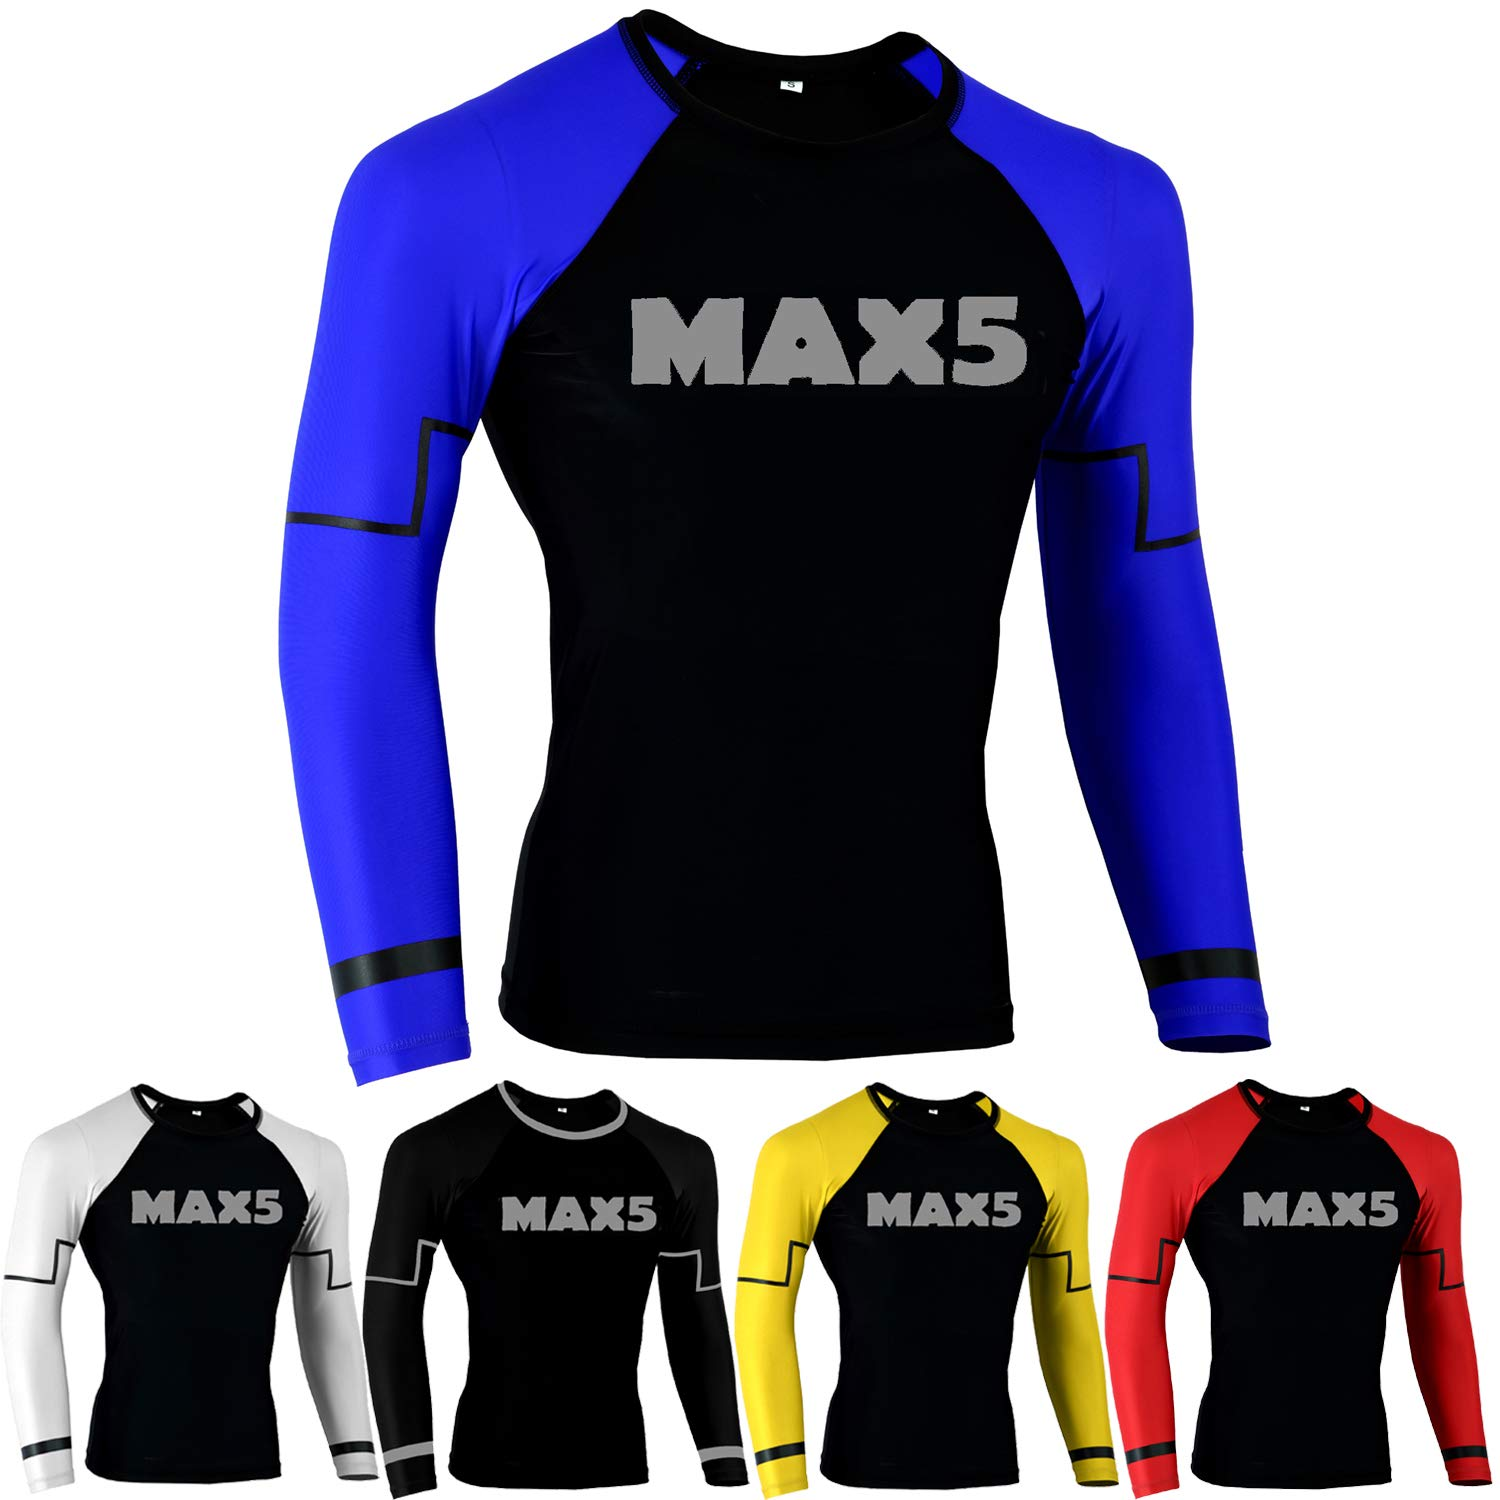 MMA Rash Guard No Gi Jiu Jitsu Fight Shirt (Blue, S) by Max5